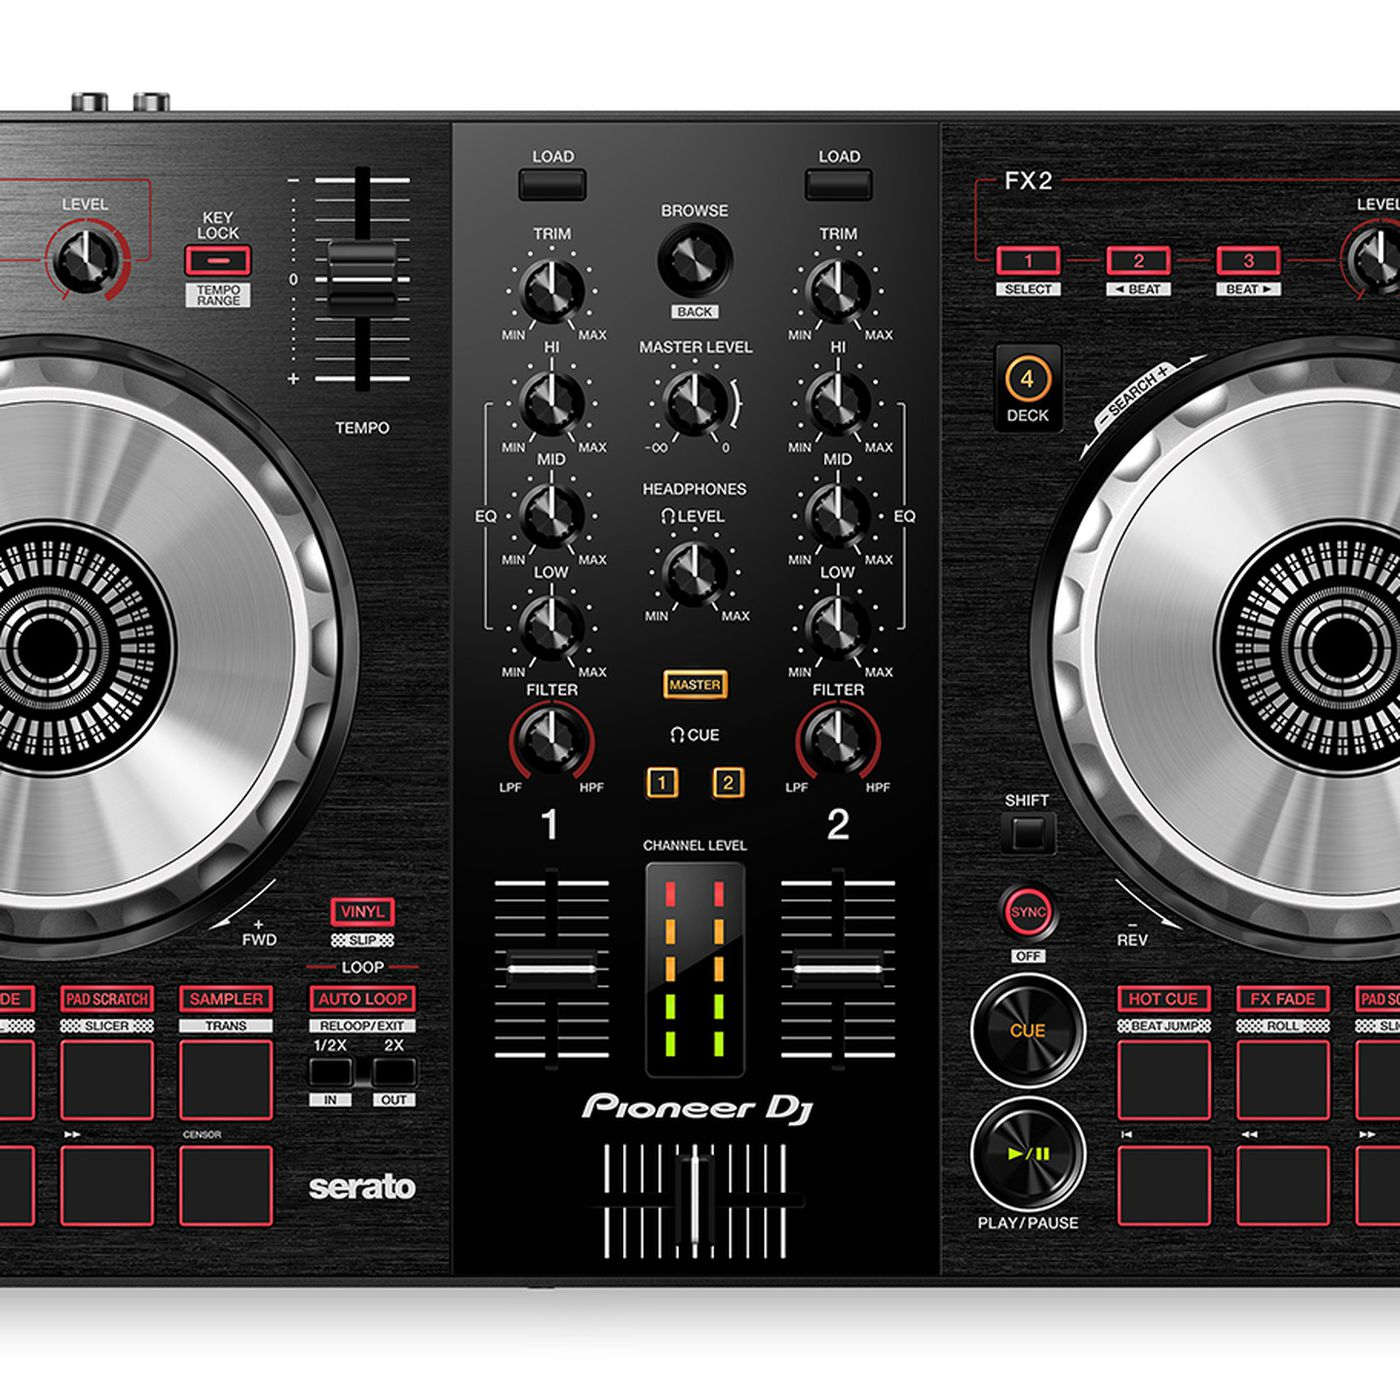 Pioneer DJ's new controller lets anyone perform complicated